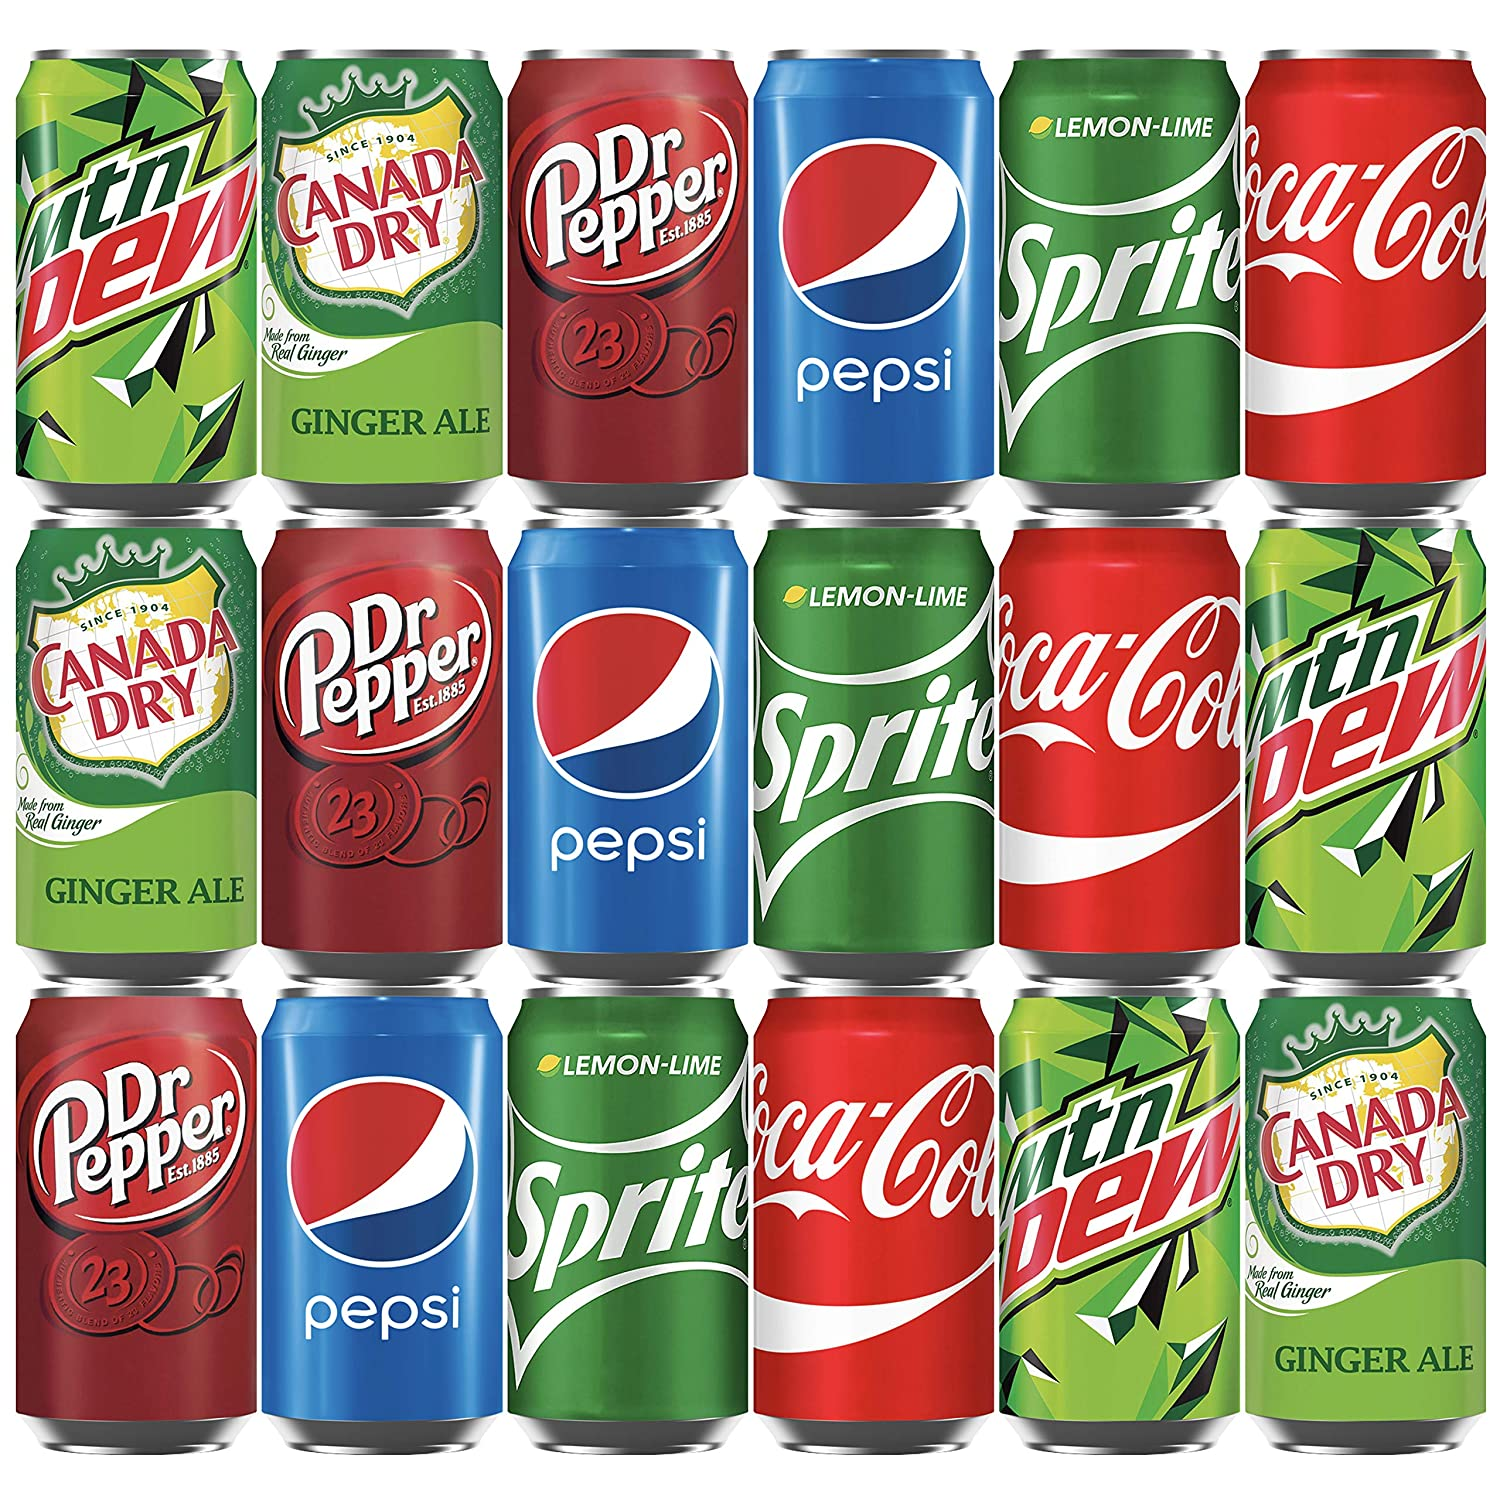 Soda Variety Pack (18 Cans) Bundle of Coke, Pepsi Cola, Dr Pepper, Mountain Dew, Sprite and Canada Dry Ginger Ale Soft Drinks, Mini Fridge Organizer Can Restock Kit